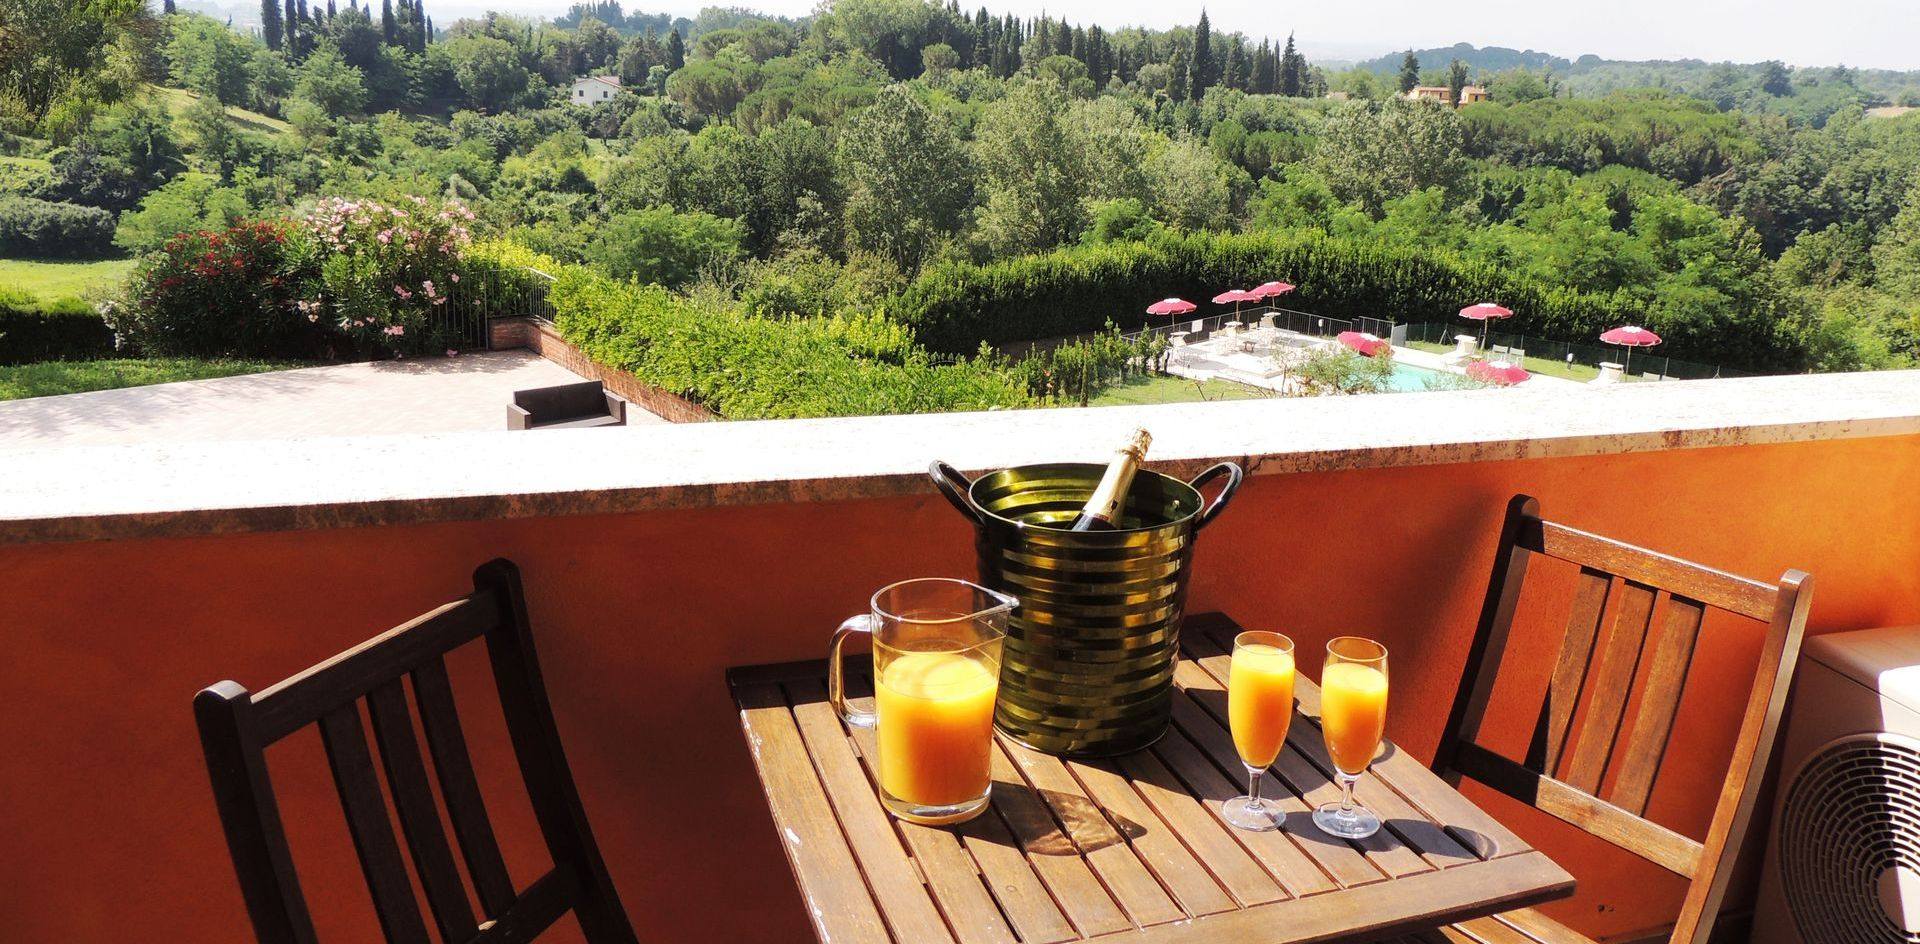 A holiday overlooking the iconic Tuscan landscape<br>-with all the comforts-